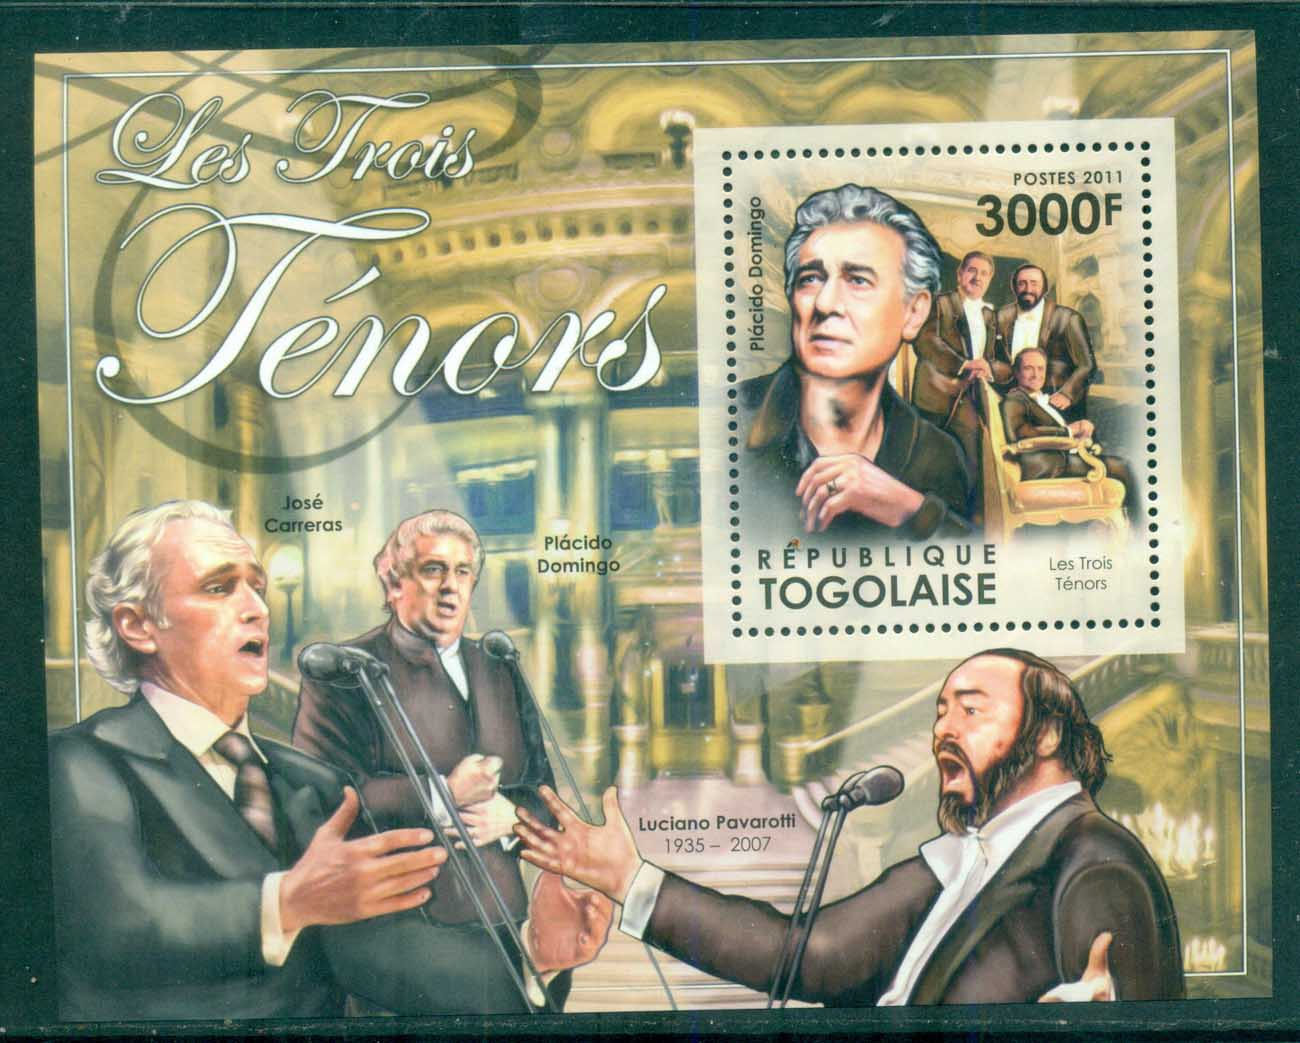 Togo 2011 Famous People, Music, Classical, Joseph Haydn MS MUH TG007